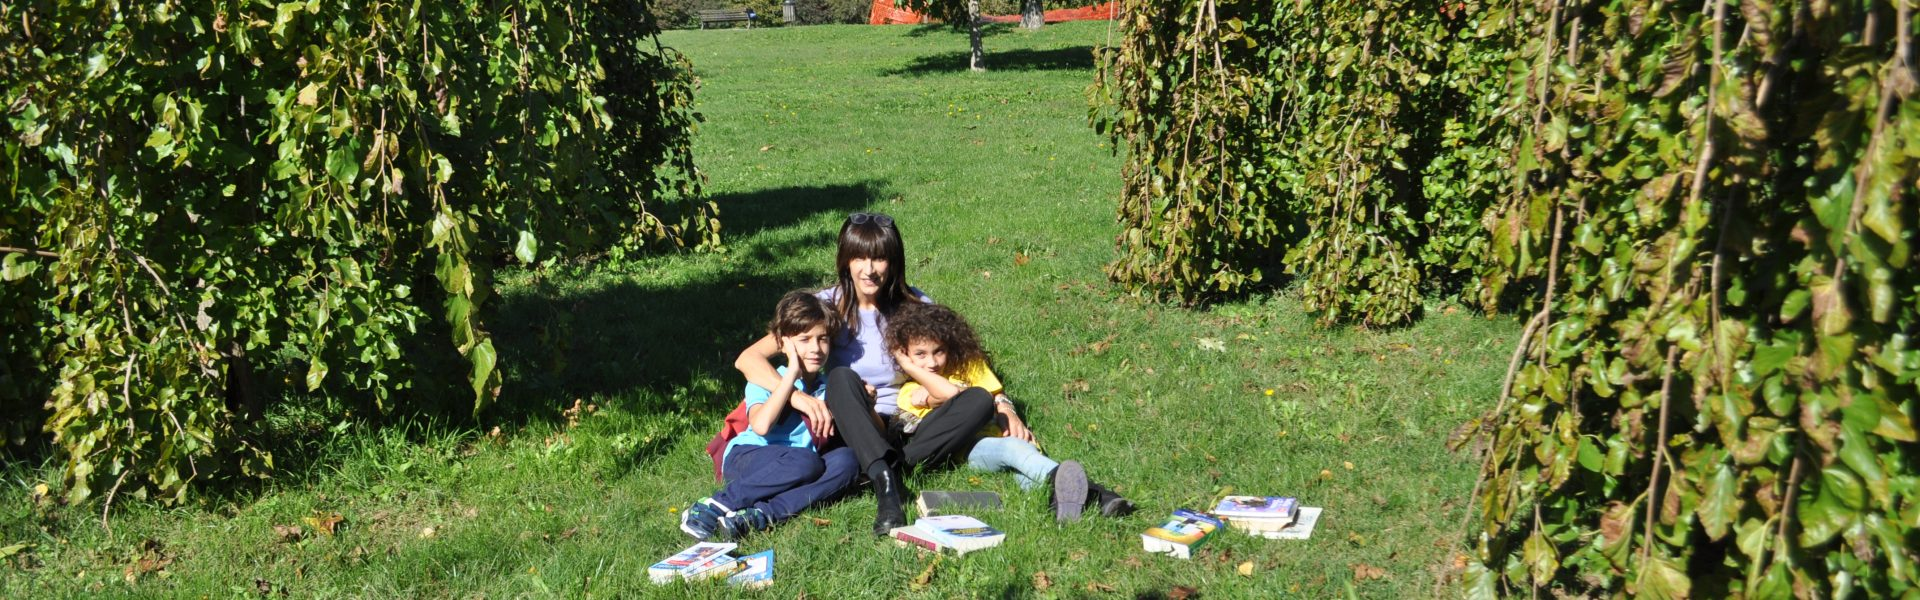 The reading family a Tempo di Libri